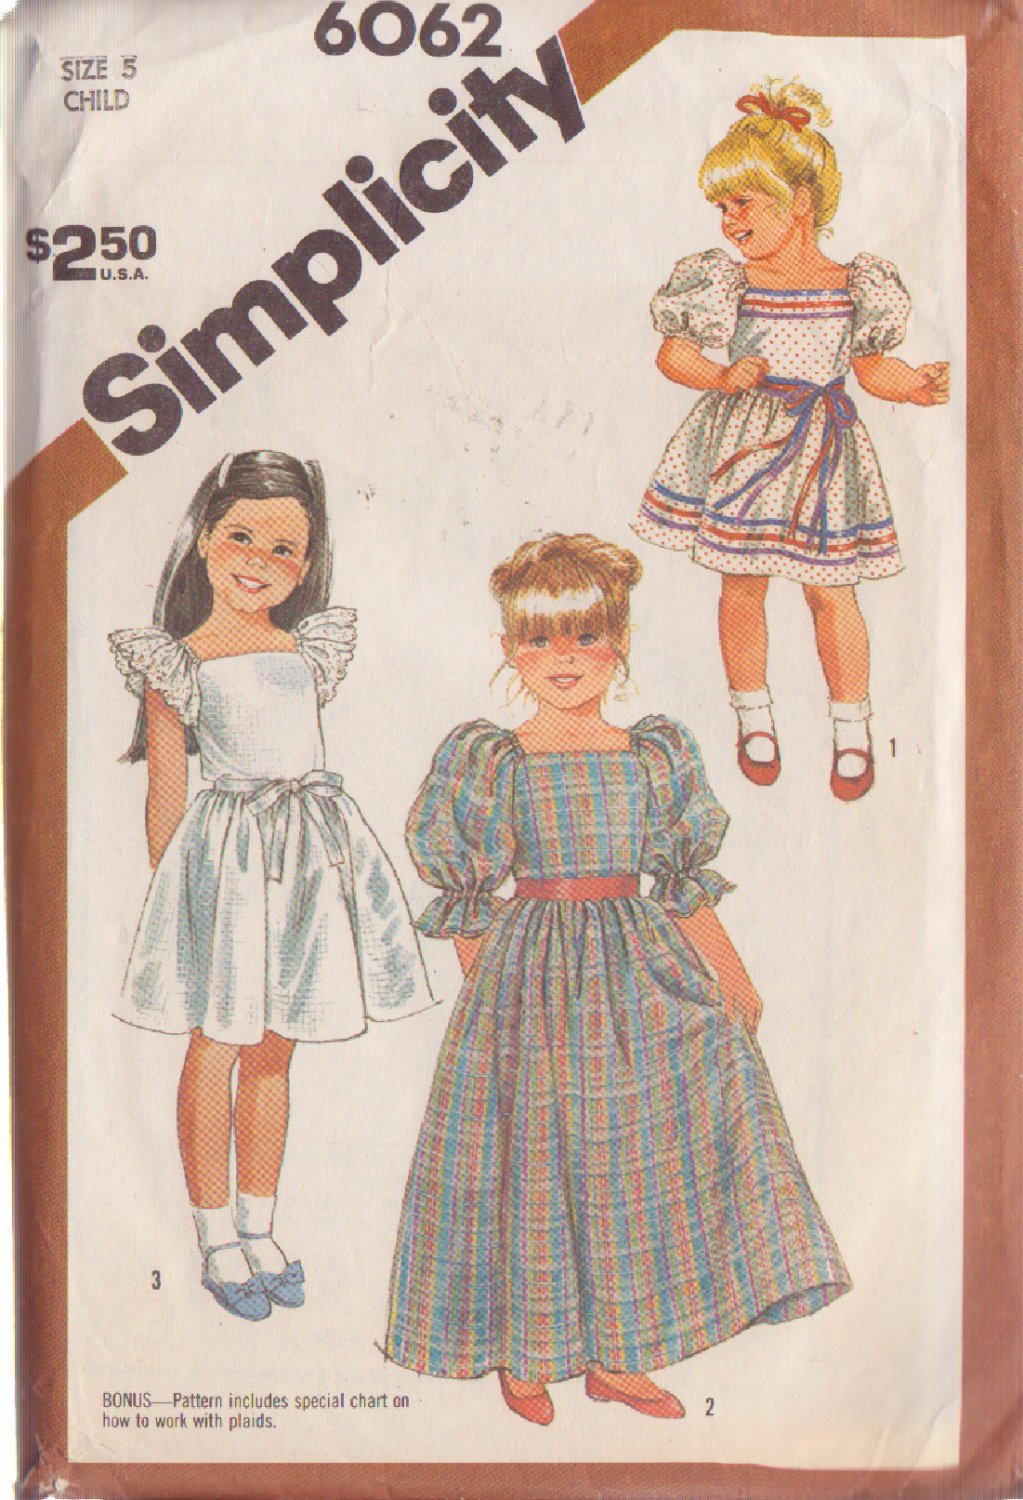 SIMPLICITY VINTAGE 1983 PATTERN 6062 SIZE 5 GIRL'S PULLOVER DRESS 2 LENGTHS